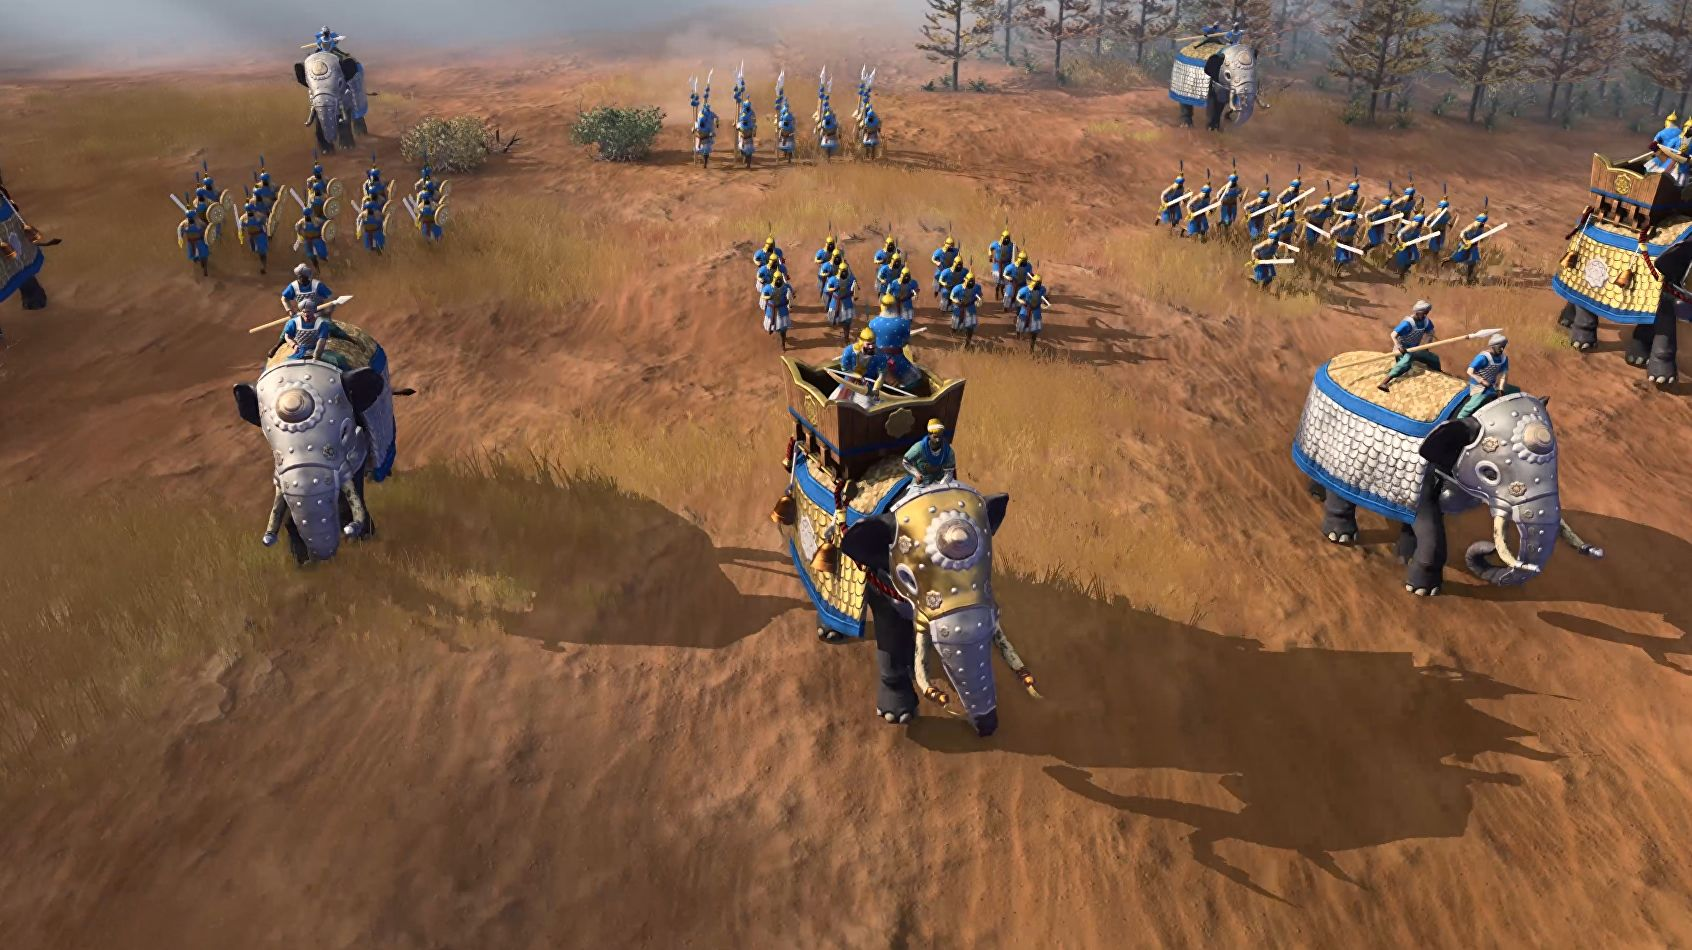 Age Of Empires 4 looks like it's got the right balance between old and new. And Elephants.